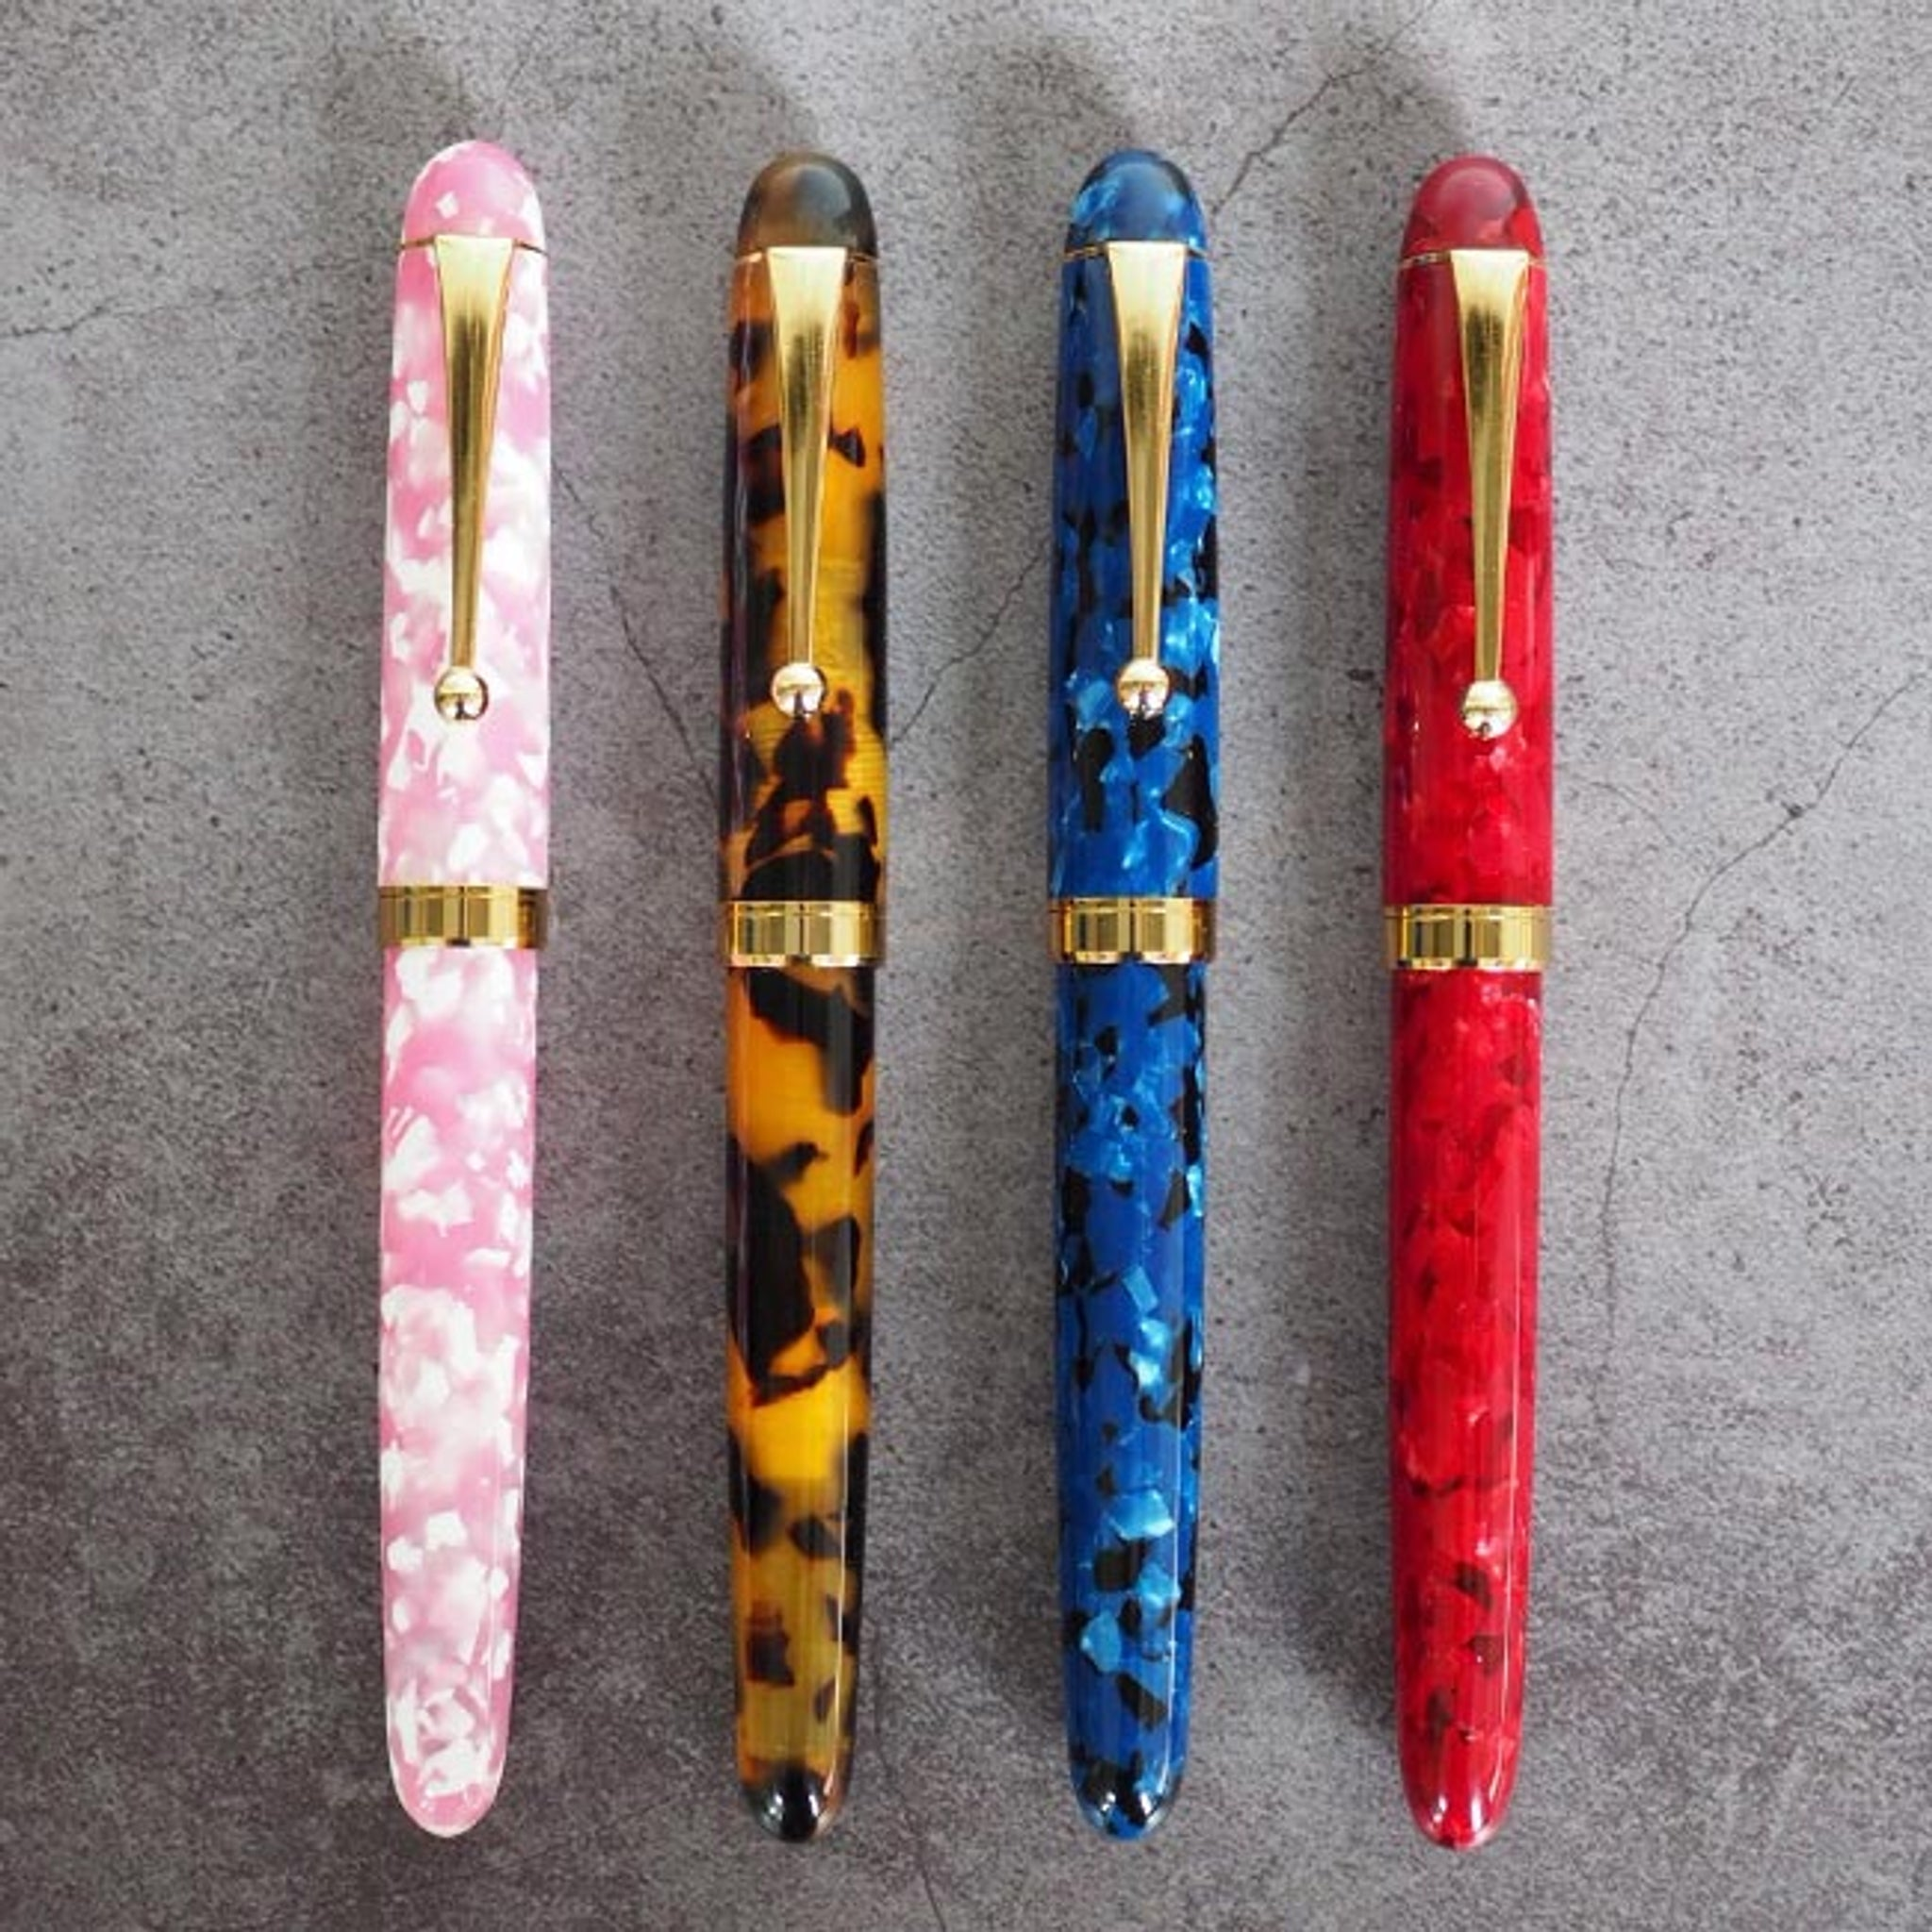 Onishi Handmade Fountain Pen Sakura